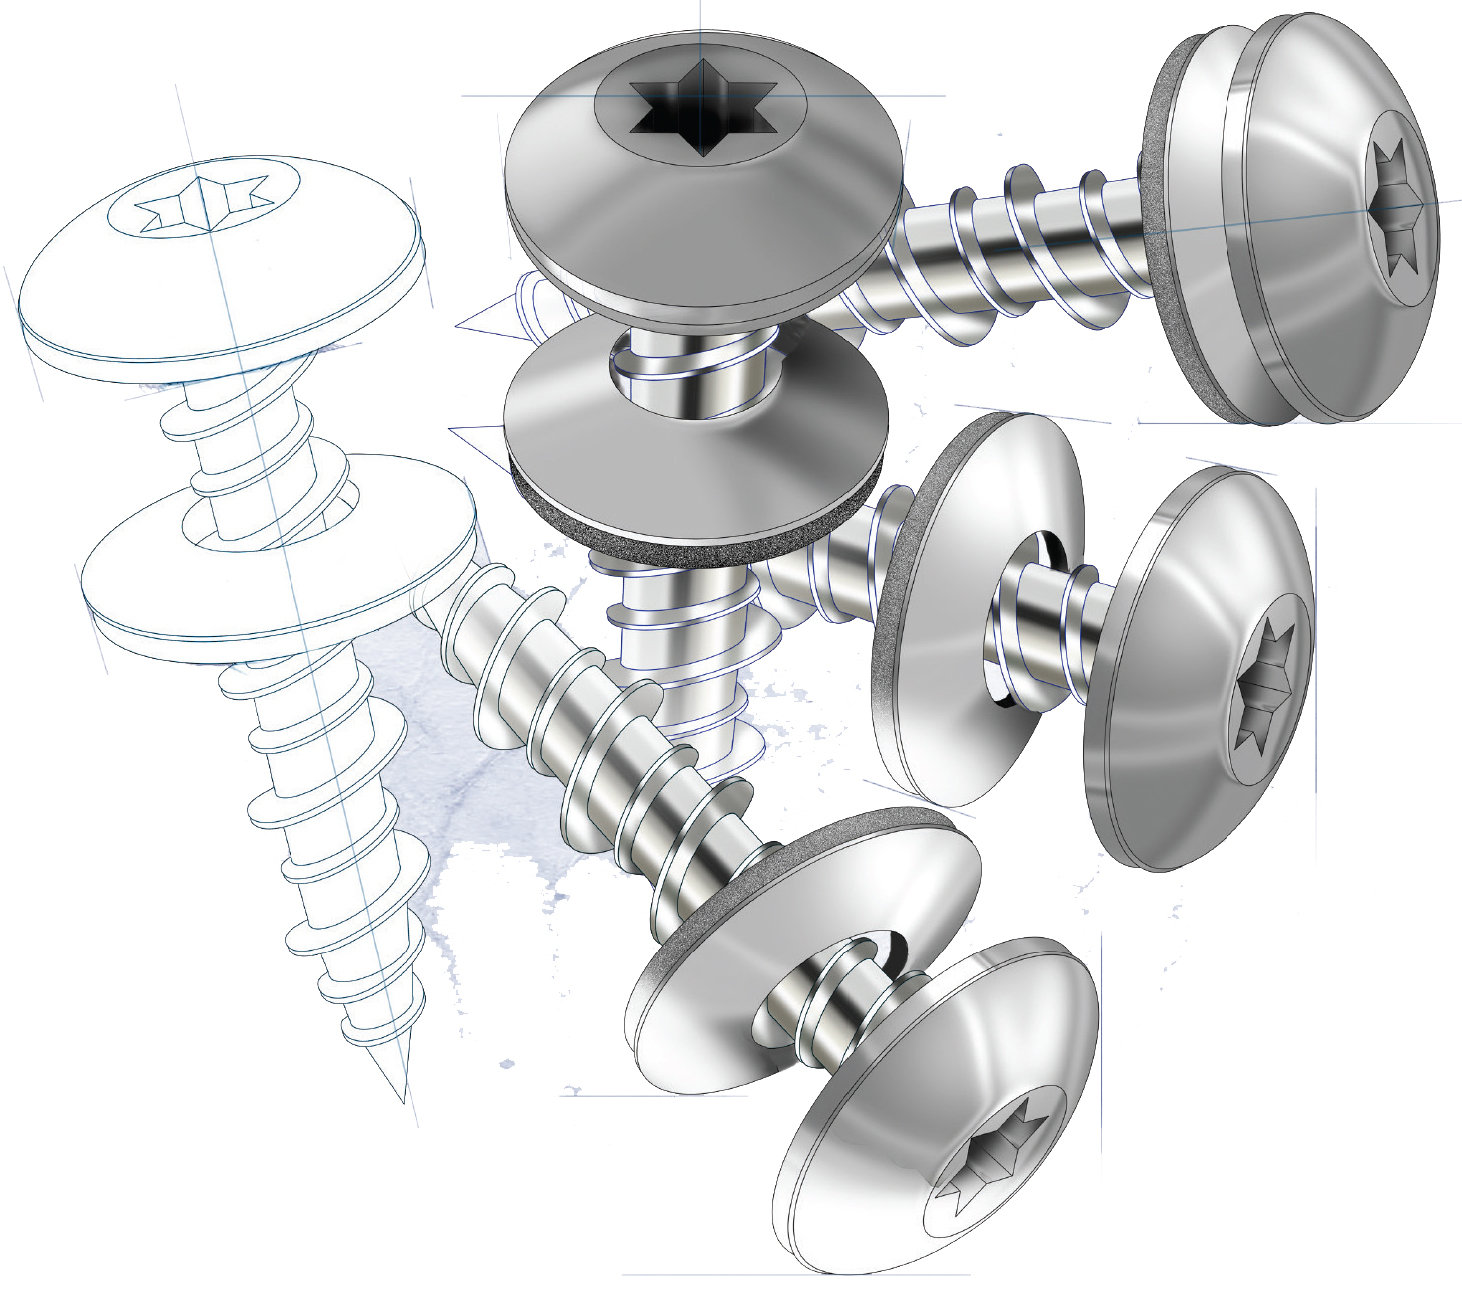 https://mi-wayenterprises.com/sites/mi-wayenterprises.com/assets/images/default/difference-fasteners.jpg